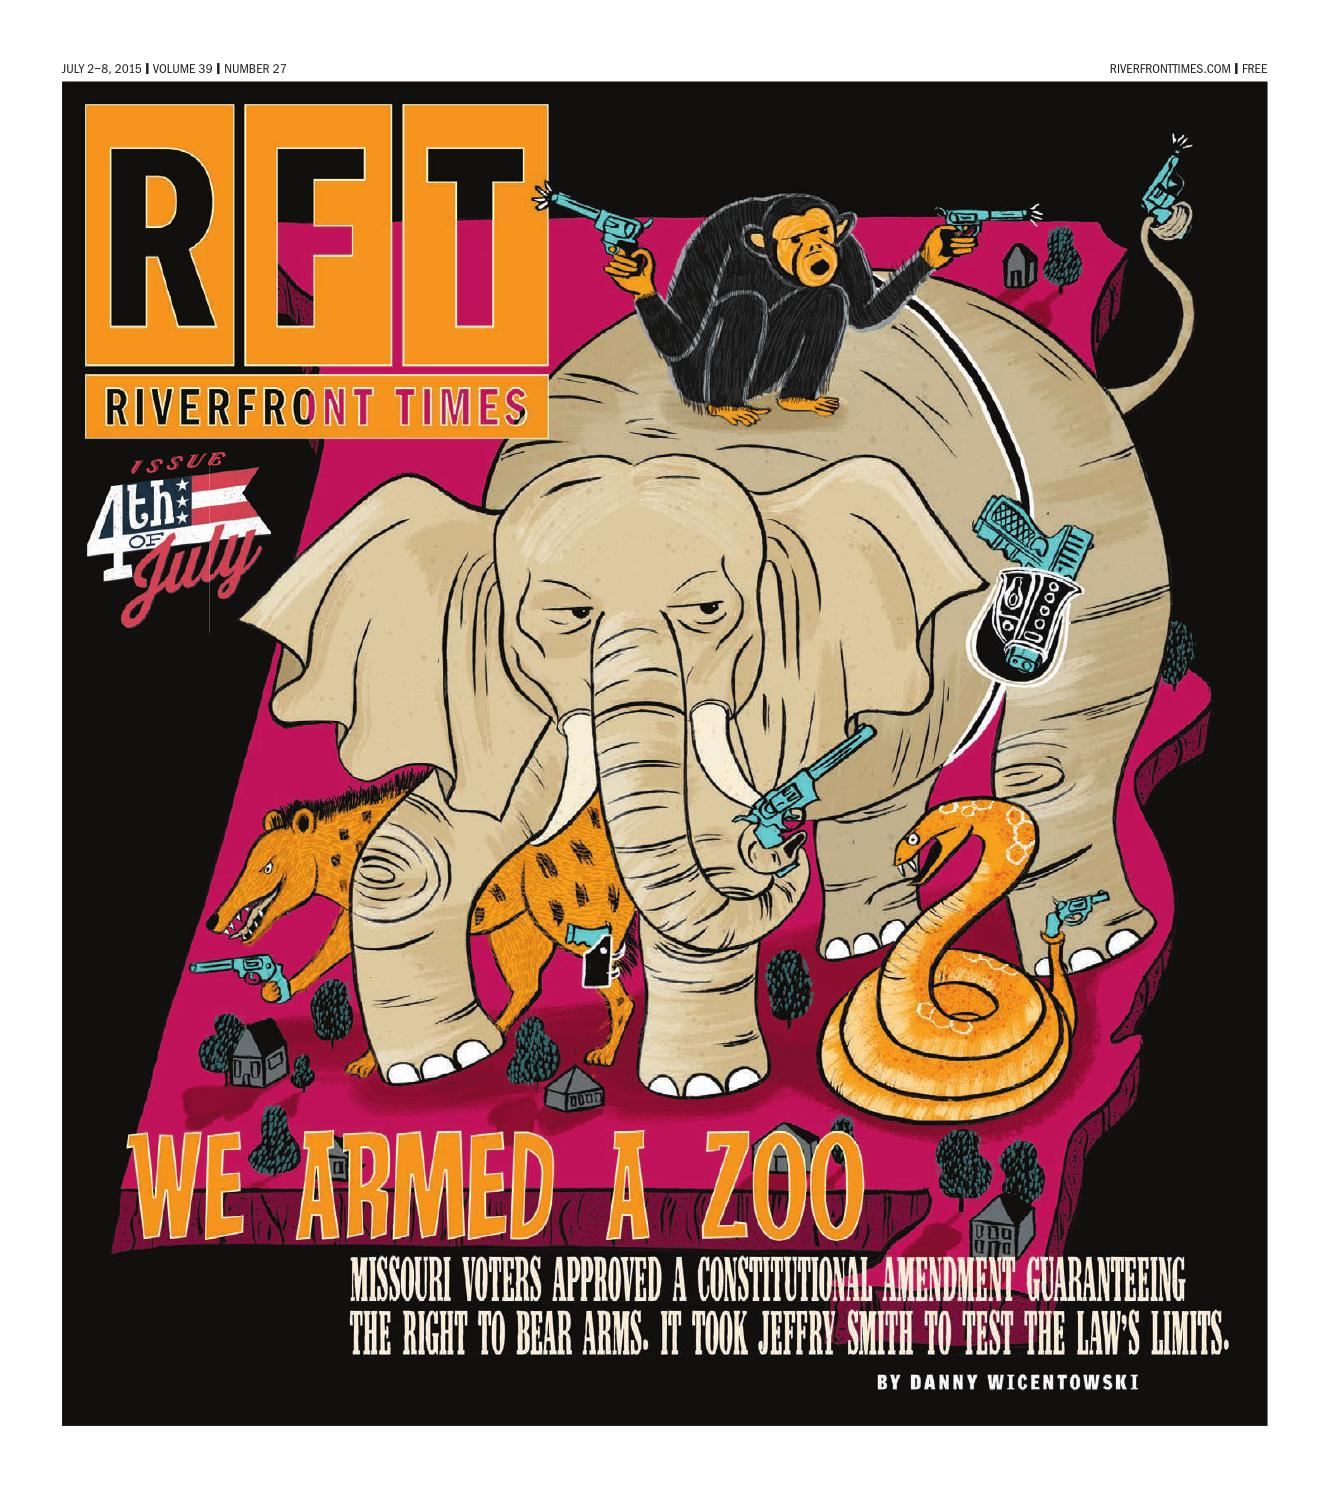 Riverfront Times July 2 2015 by Euclid Media Group issuu